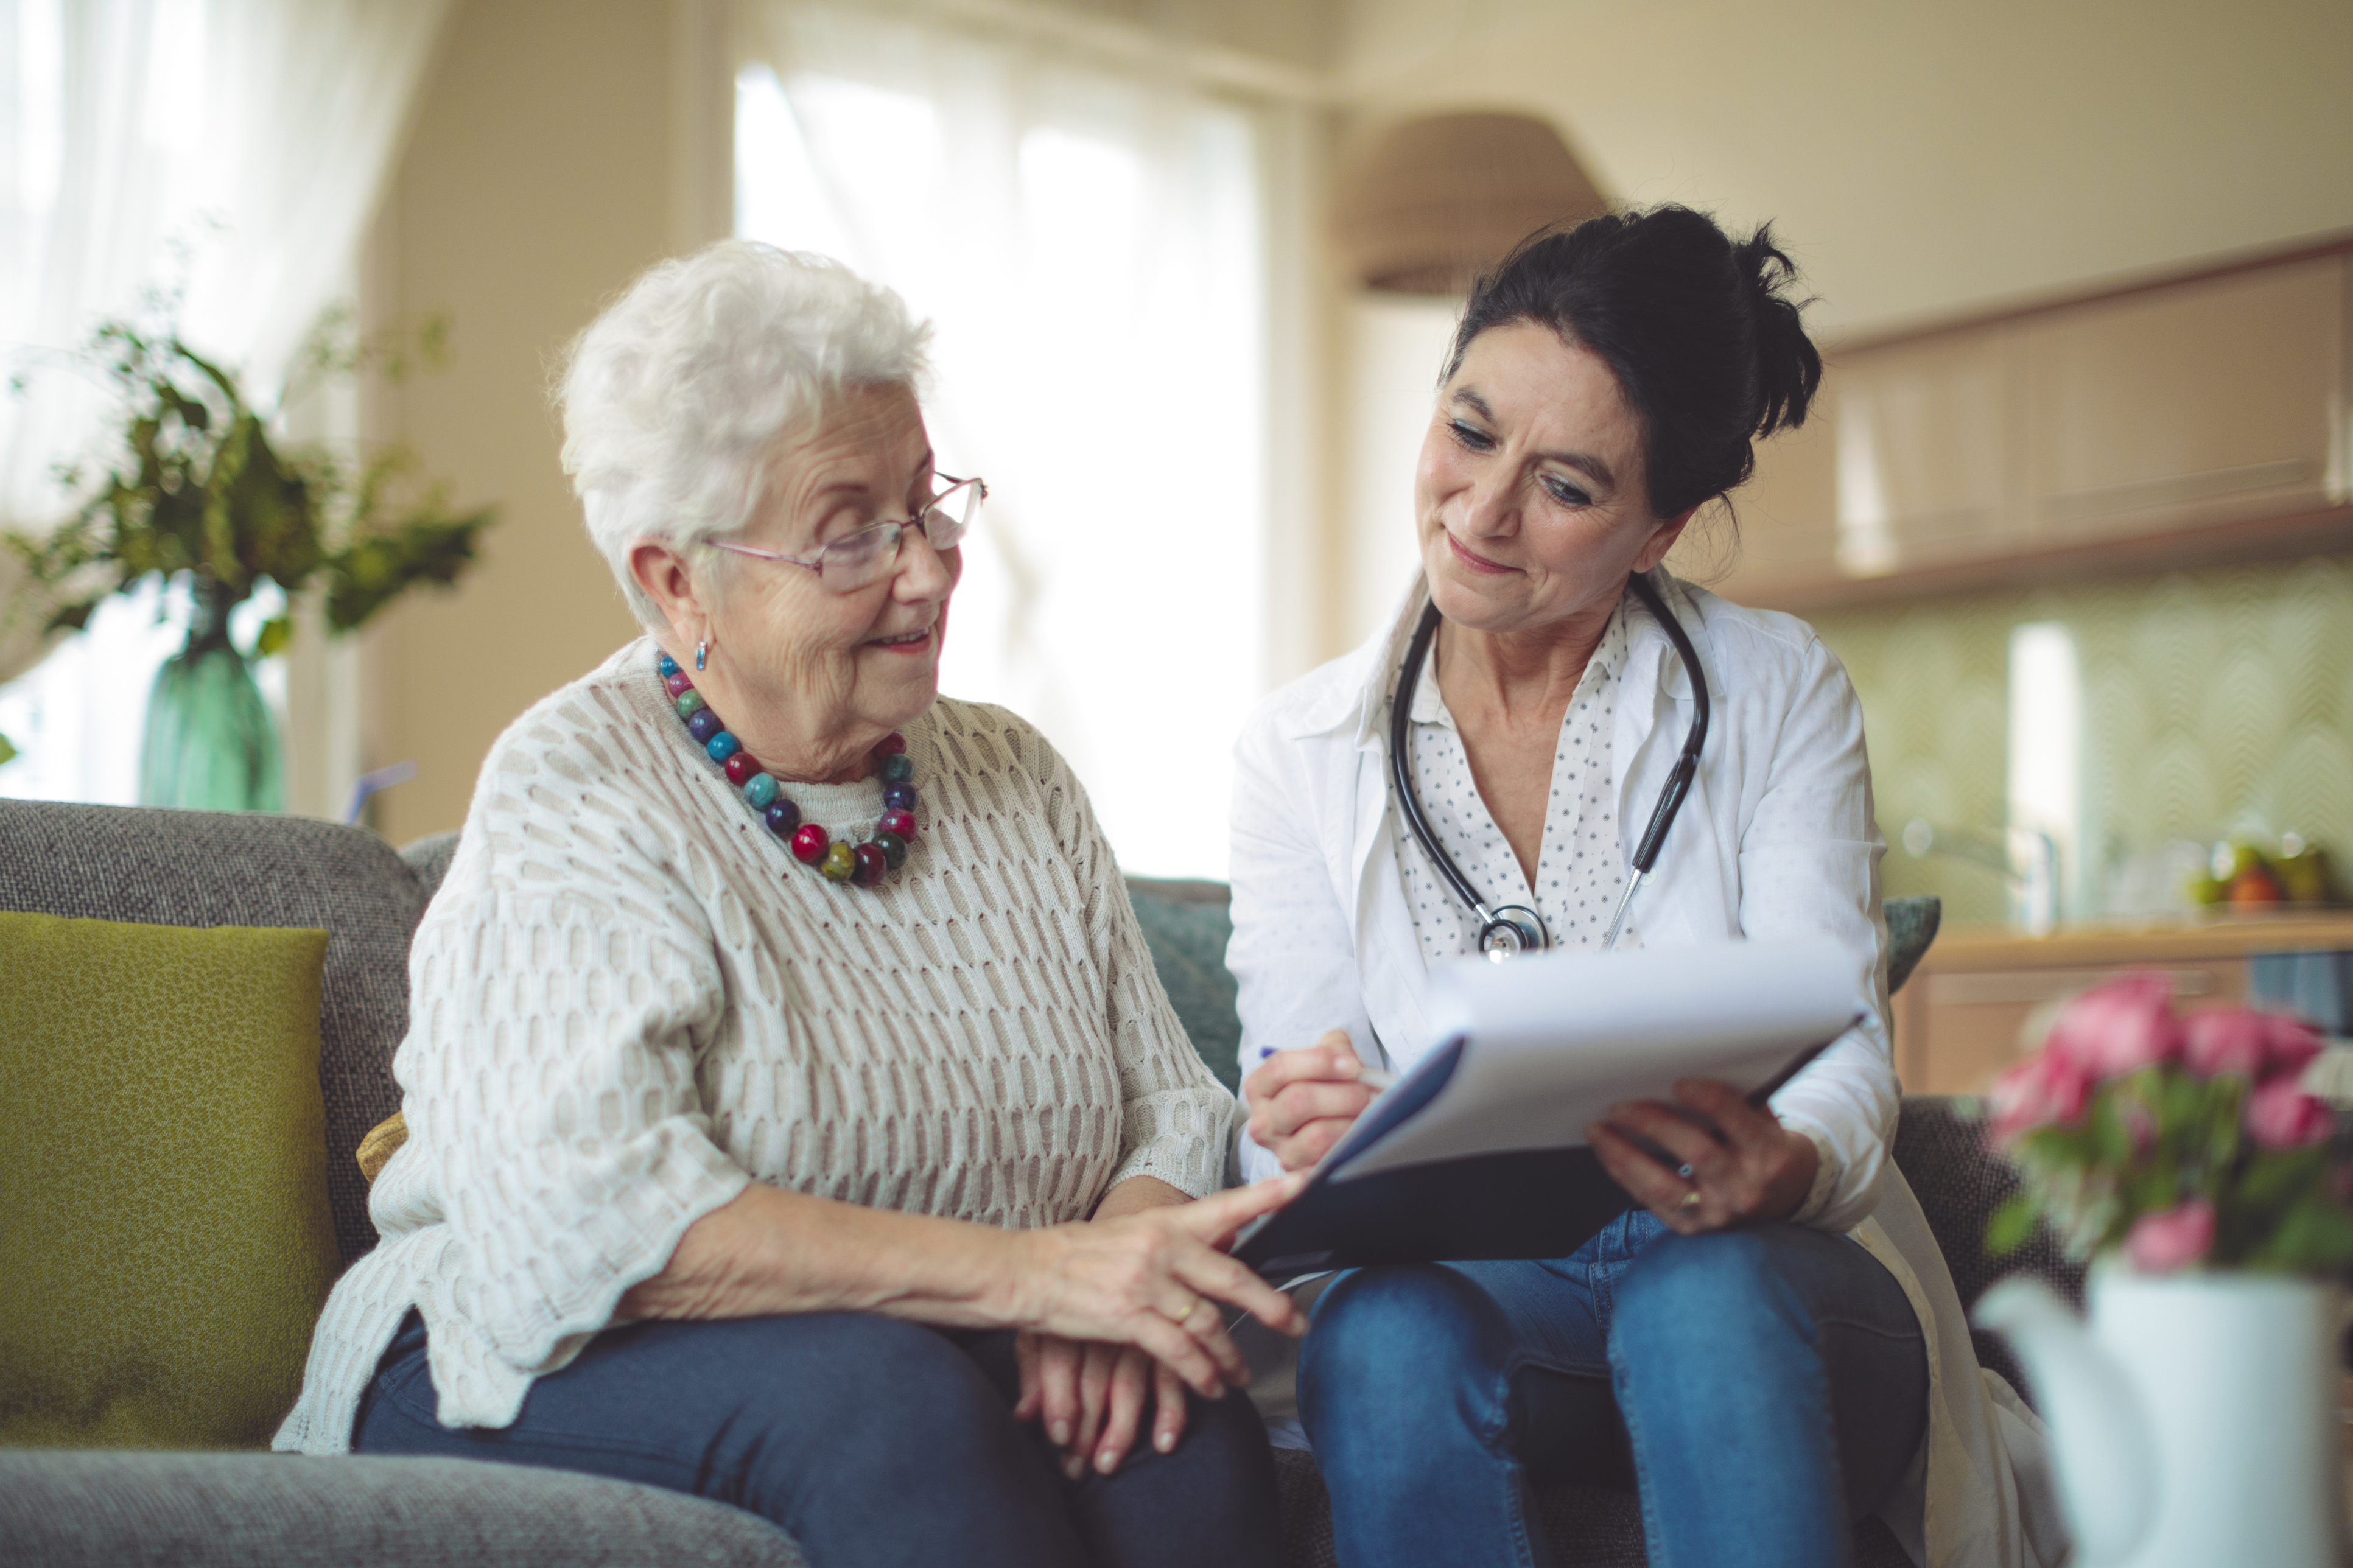 Home visits during clinical trials - Delta Healthcare Consulting